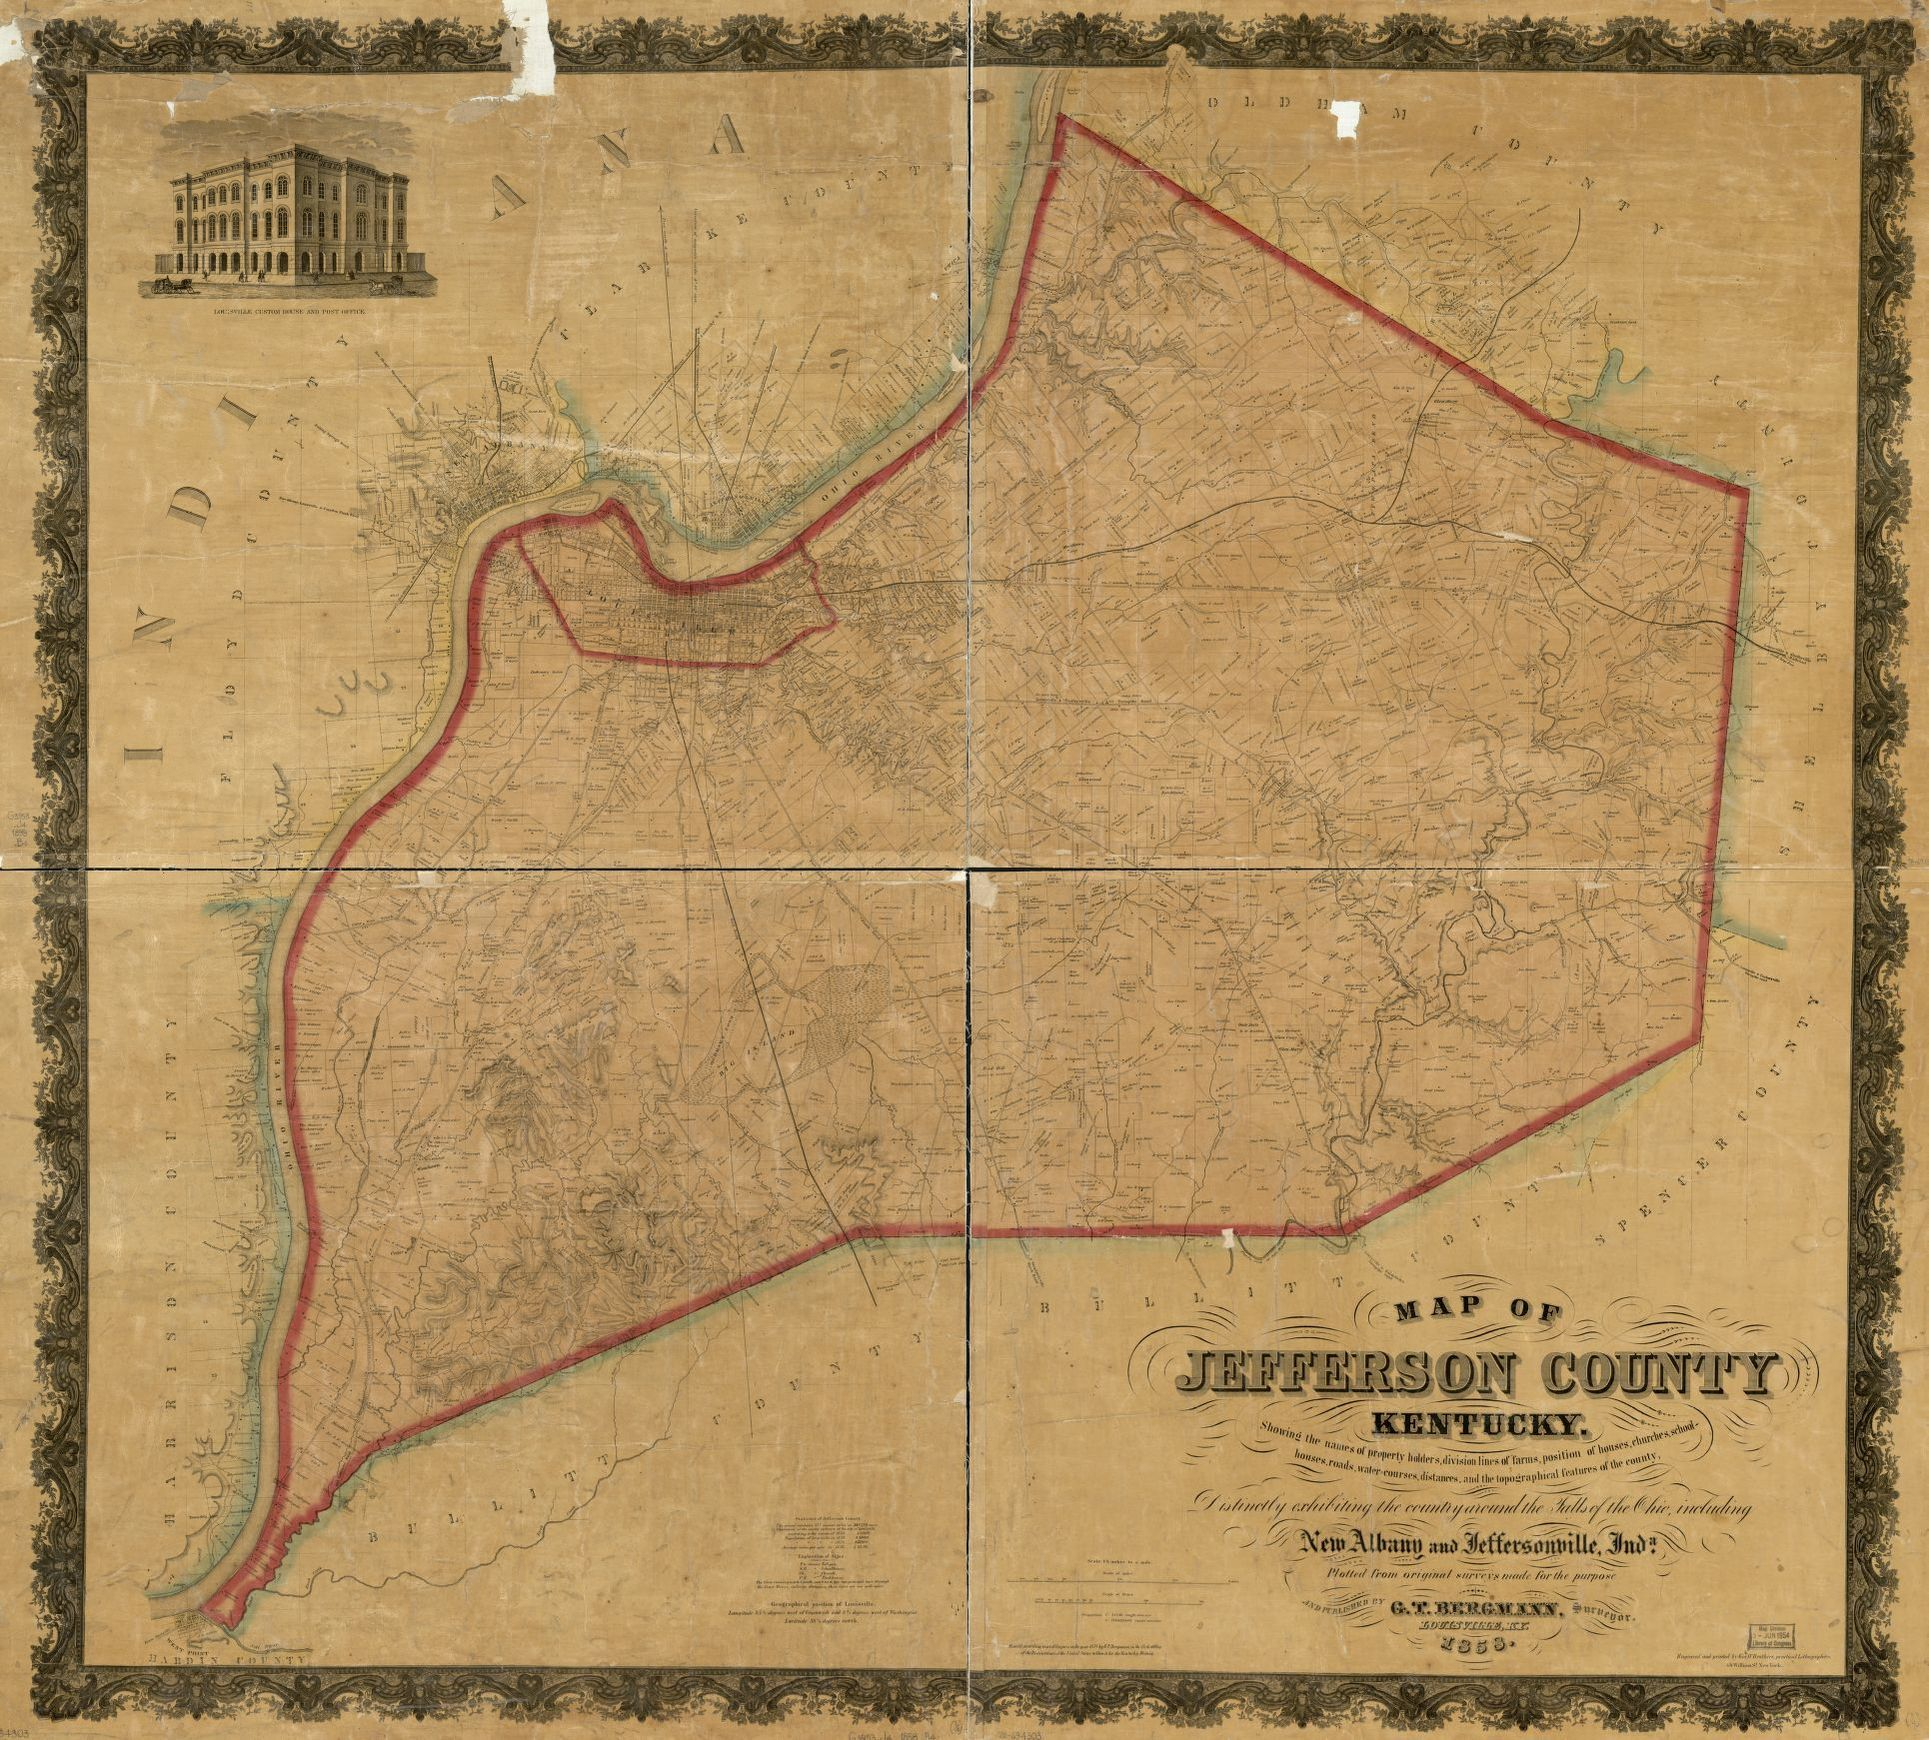 Map Of Jefferson County Kentucky Showing The Names Of